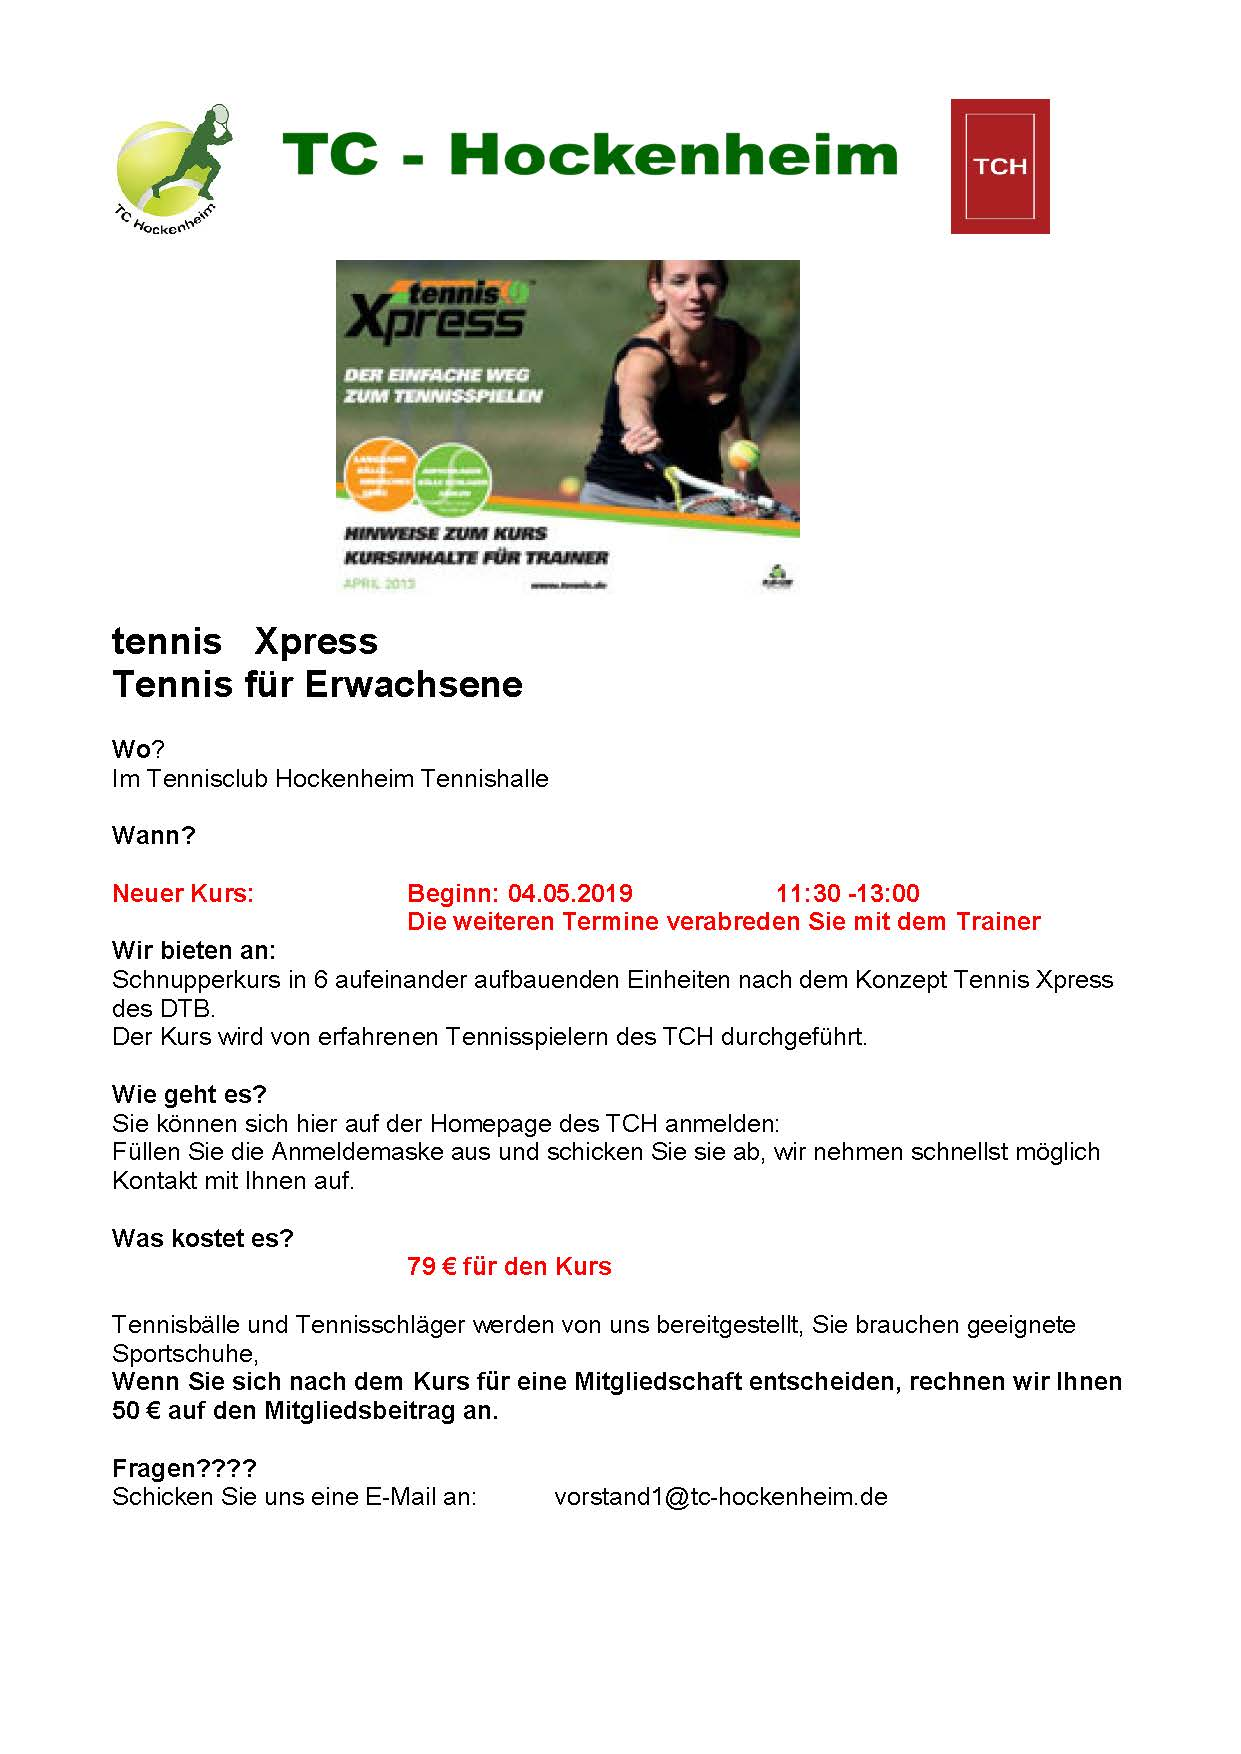 tennis Xpress 2019